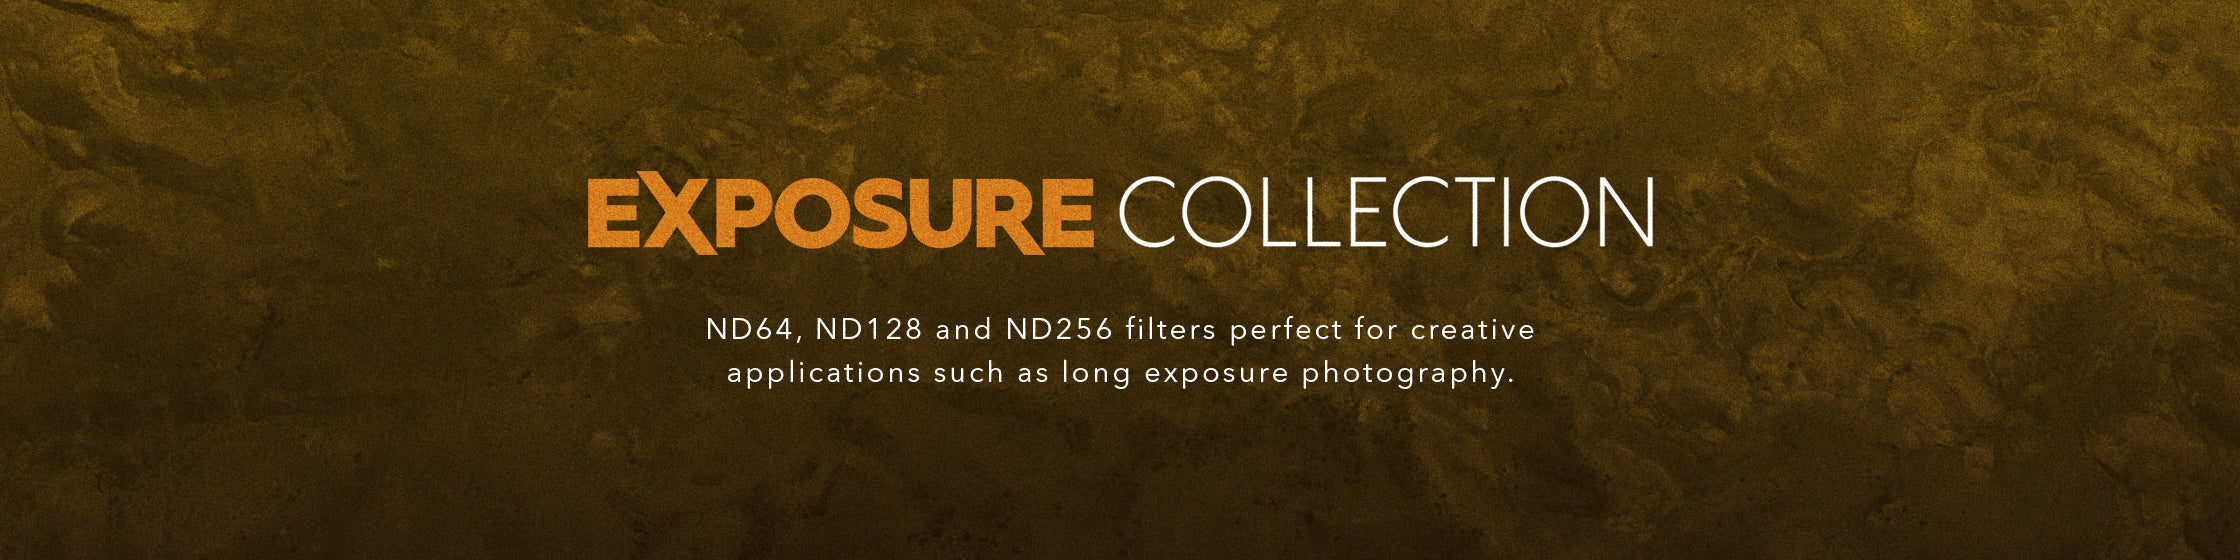 exposure collection